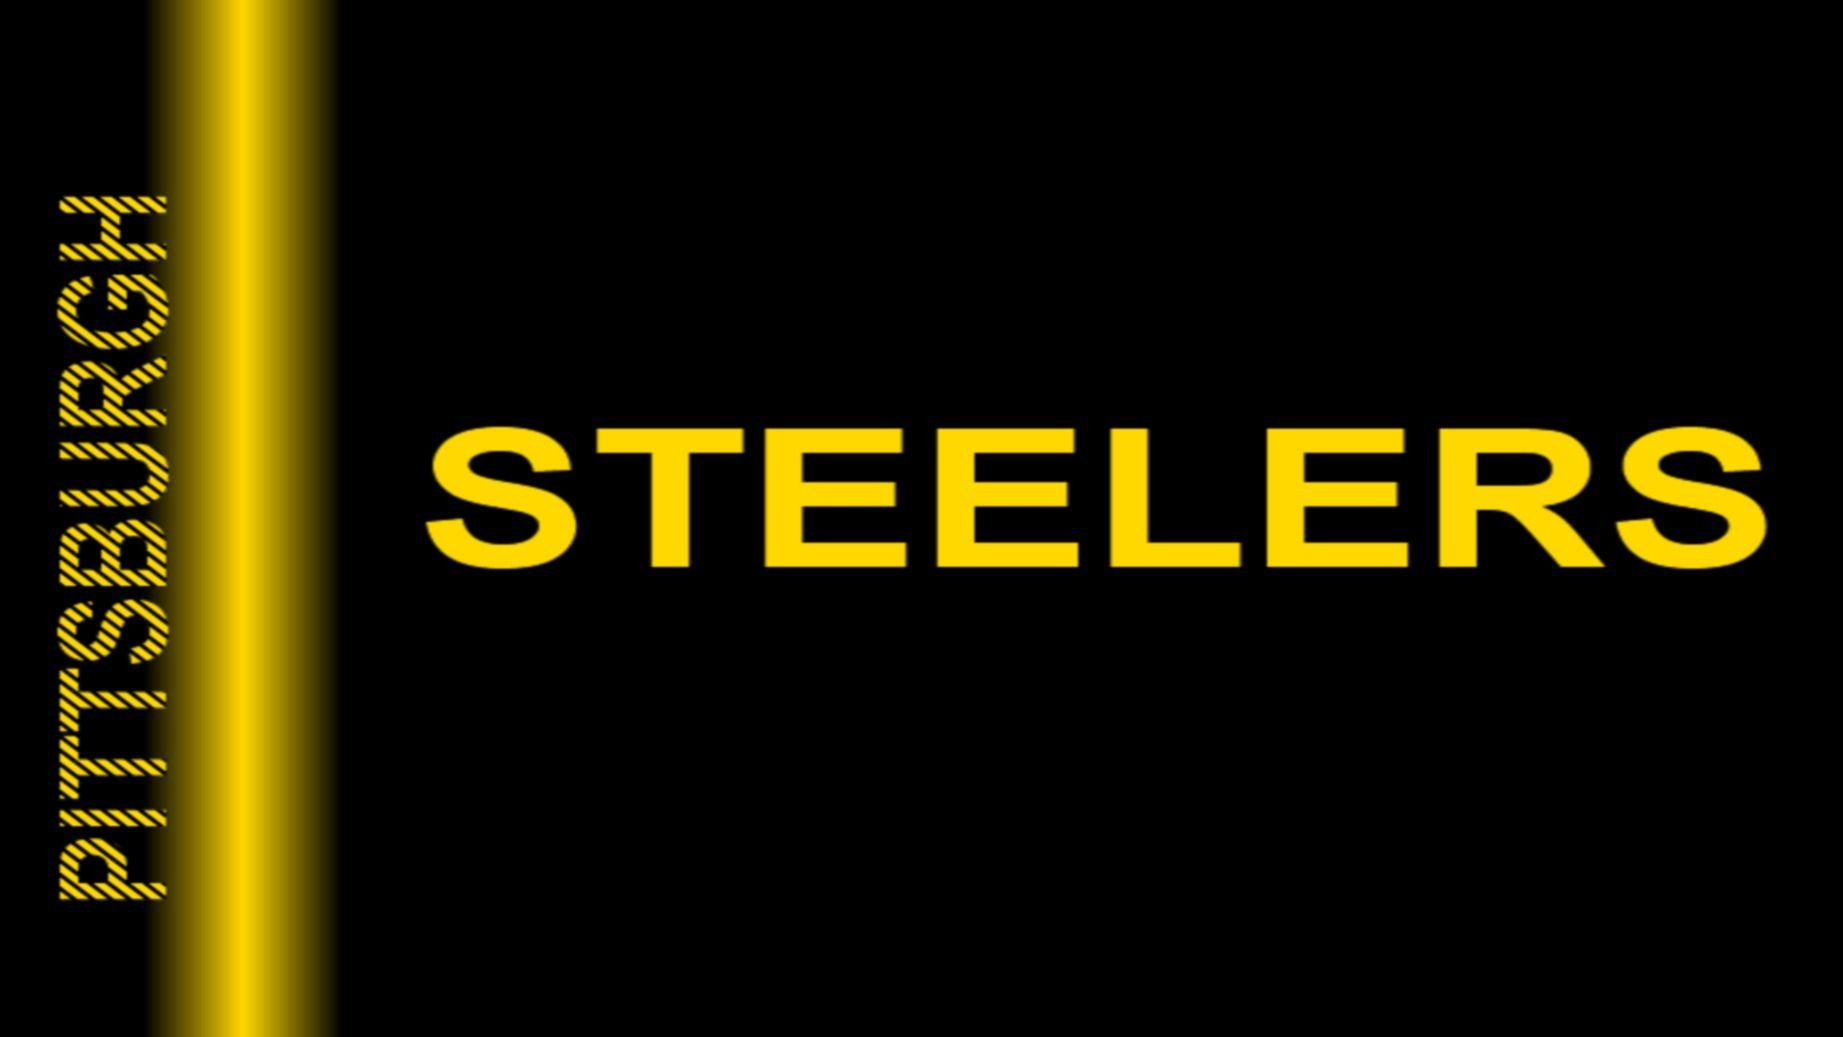 Steelers Hd Wallpapers and Backgrounds